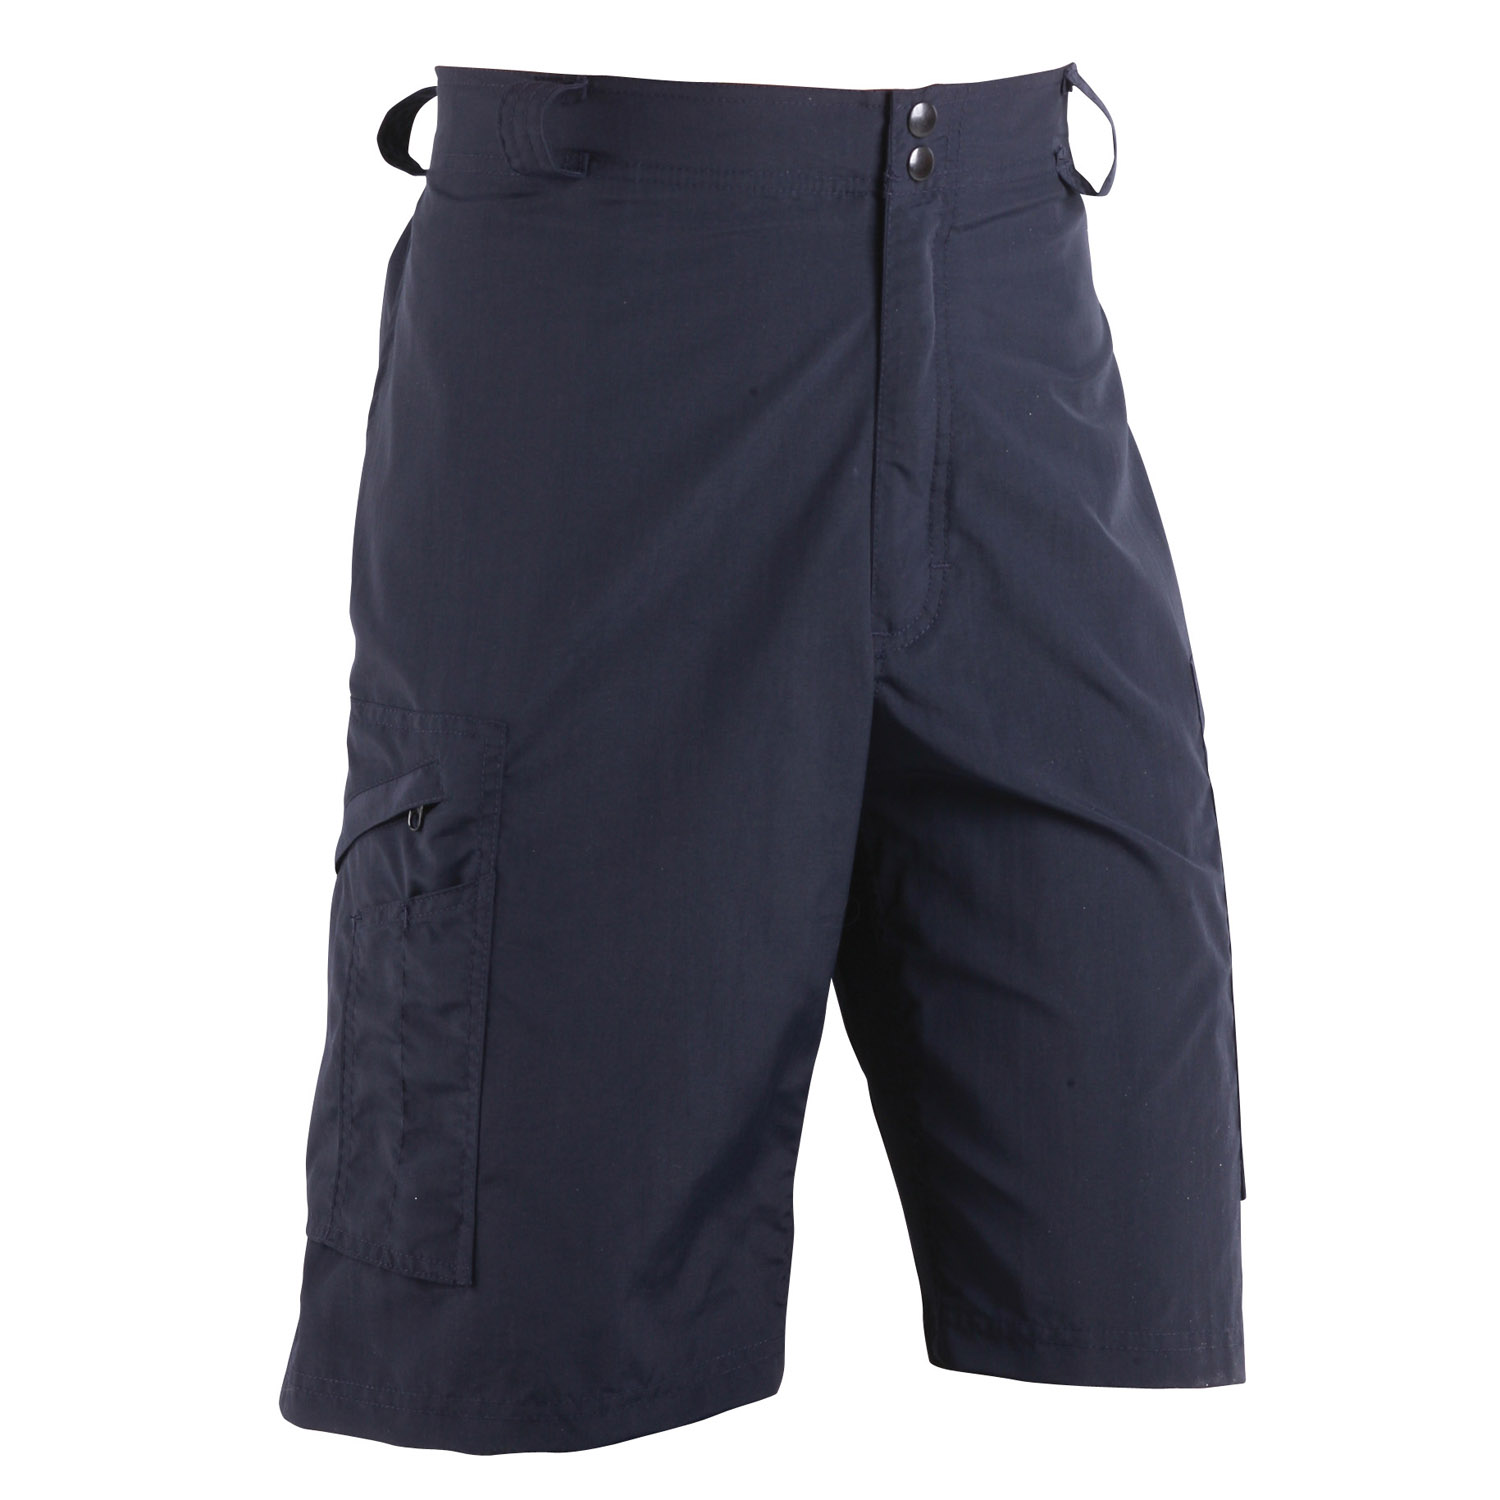 "Mocean 10"" Long Rider Bike Shorts"